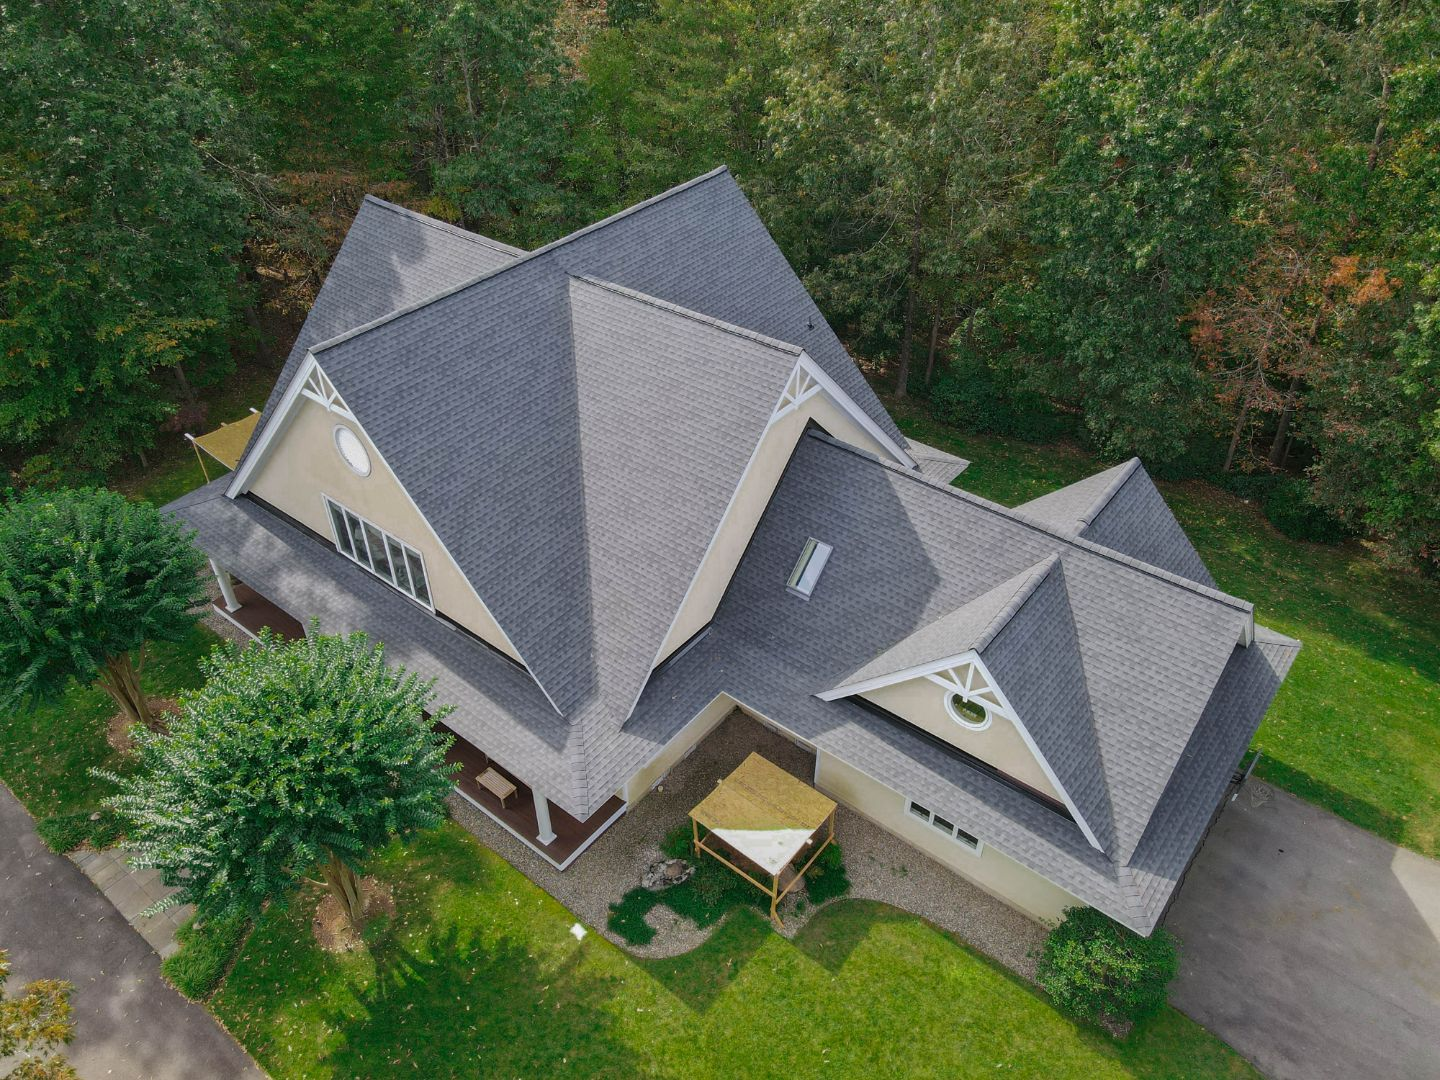 SmartRoof - Residential, Commercial Ridley Park PA Roofing Contractors - Residential, Commercial McLean Roofing Contractors